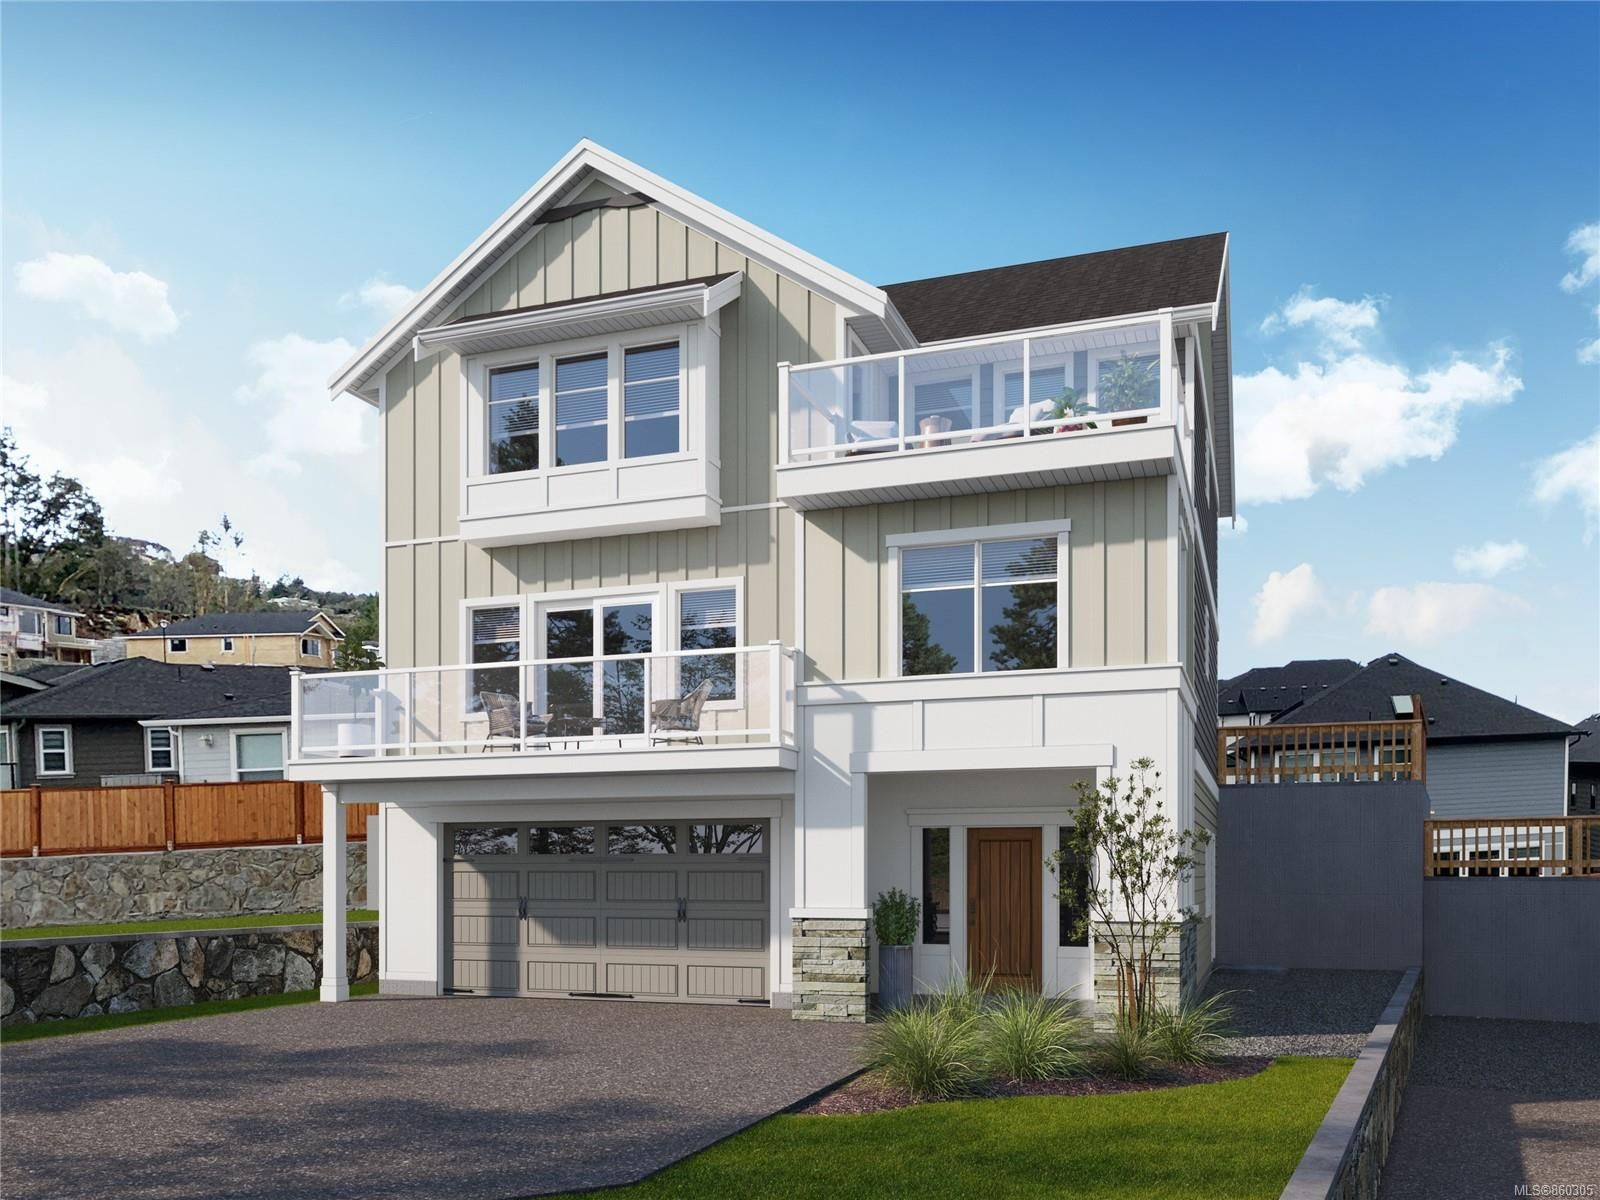 Artist's rendering from similar home plan, actual construction will vary.